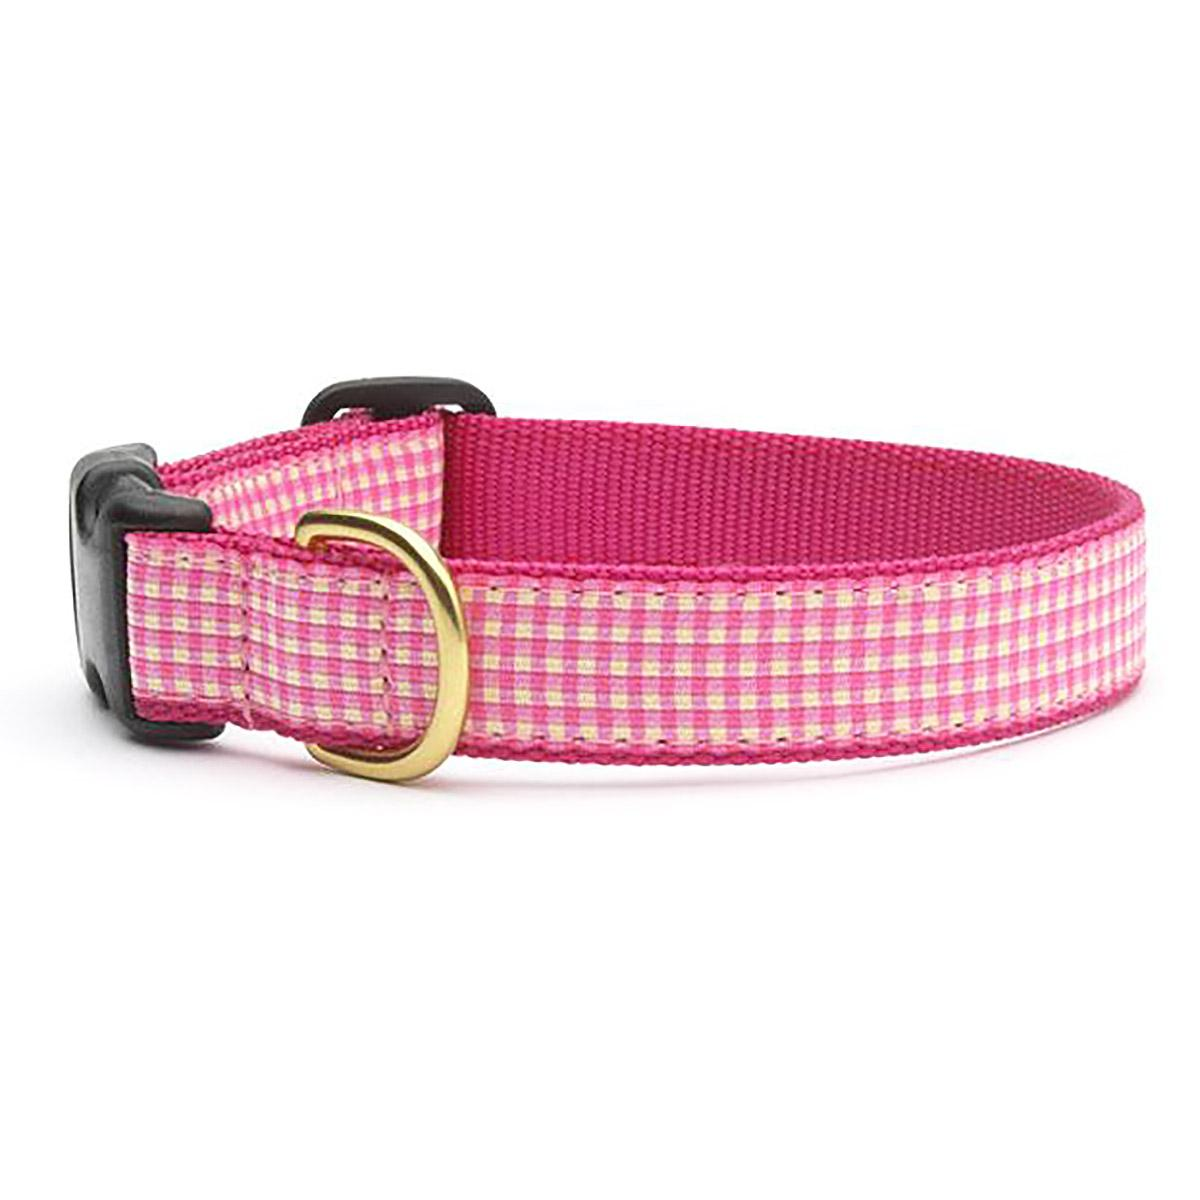 Pink Gingham Dog Collar by Up Country